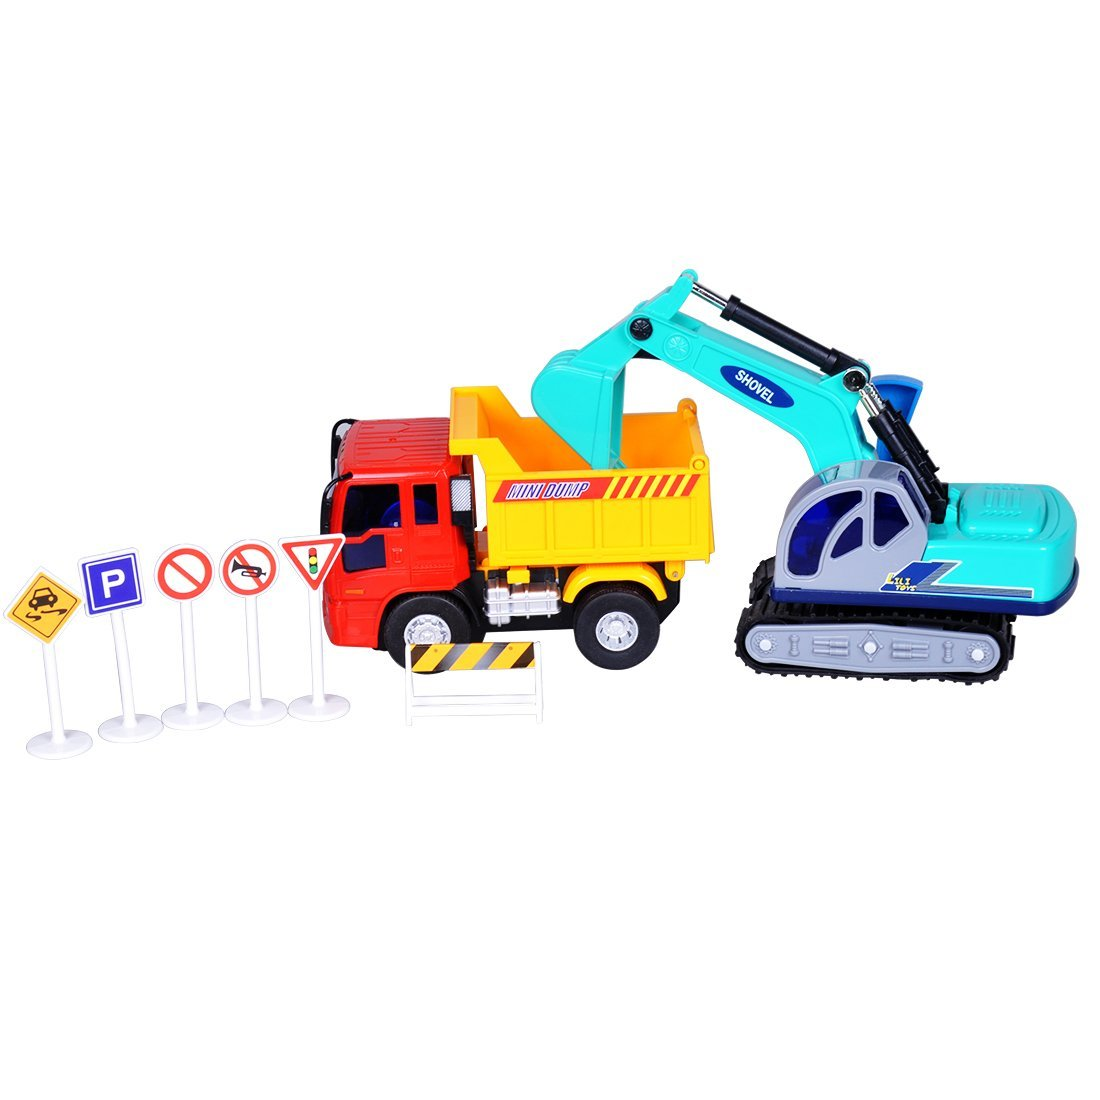 Miyare Inertial Vehicle Dumpers Truck Excavator Toy Car Model Set Small